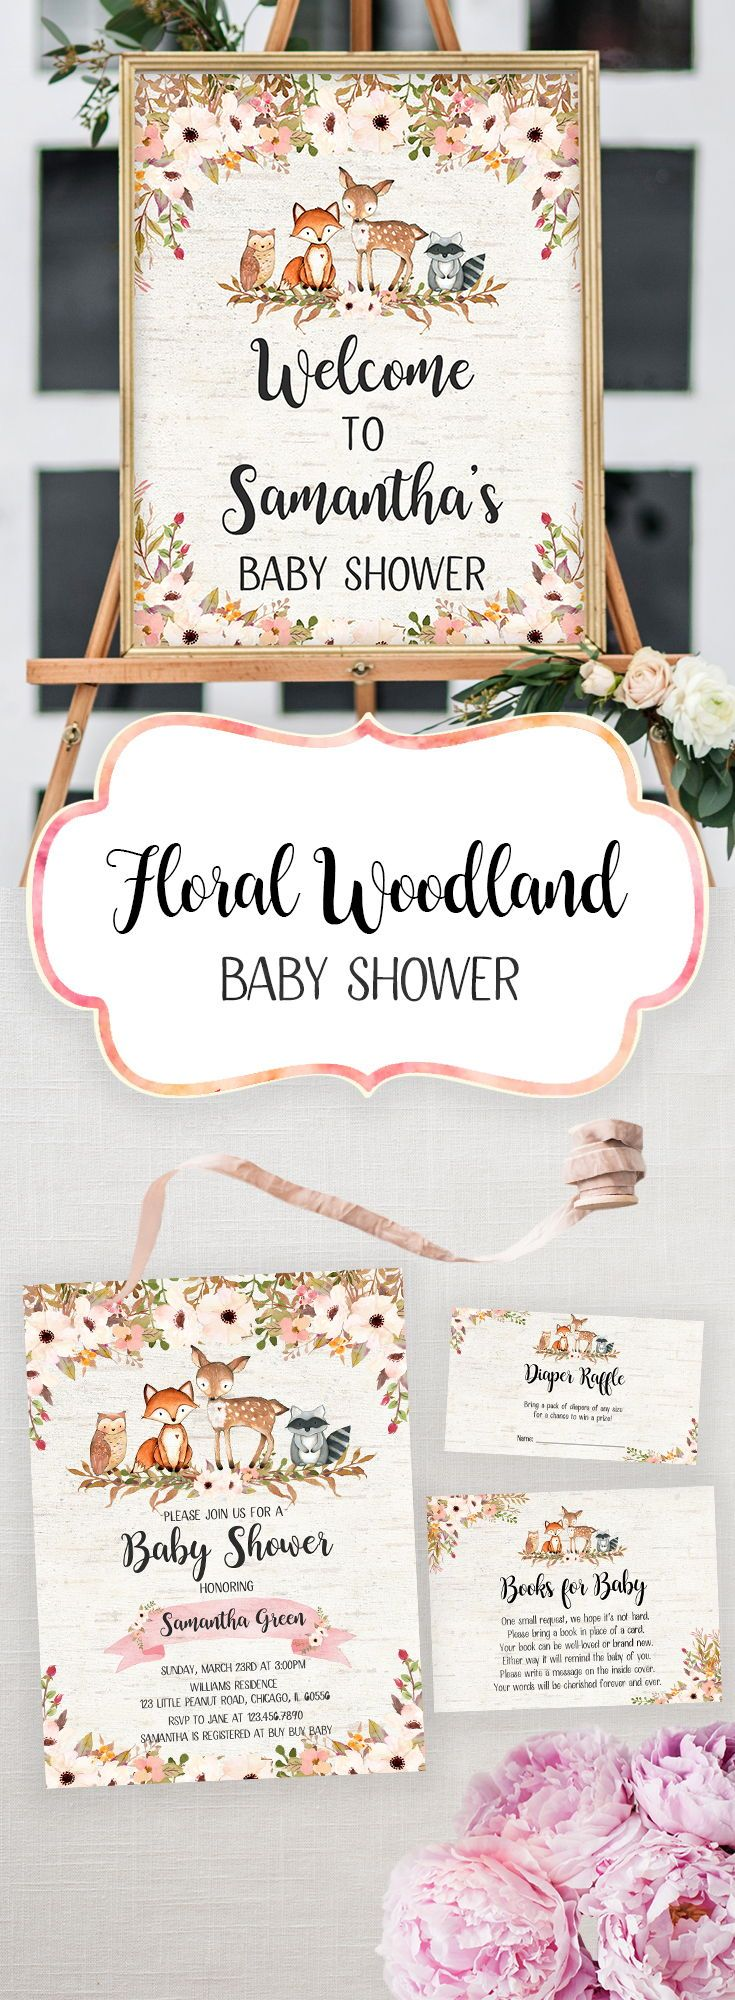 Floral Woodland Baby Shower Printables : Includes signs, games, and invitations! :: Let's Baby Shower #babyshower #babyshowerinvitations #babyshowerprintables #printables